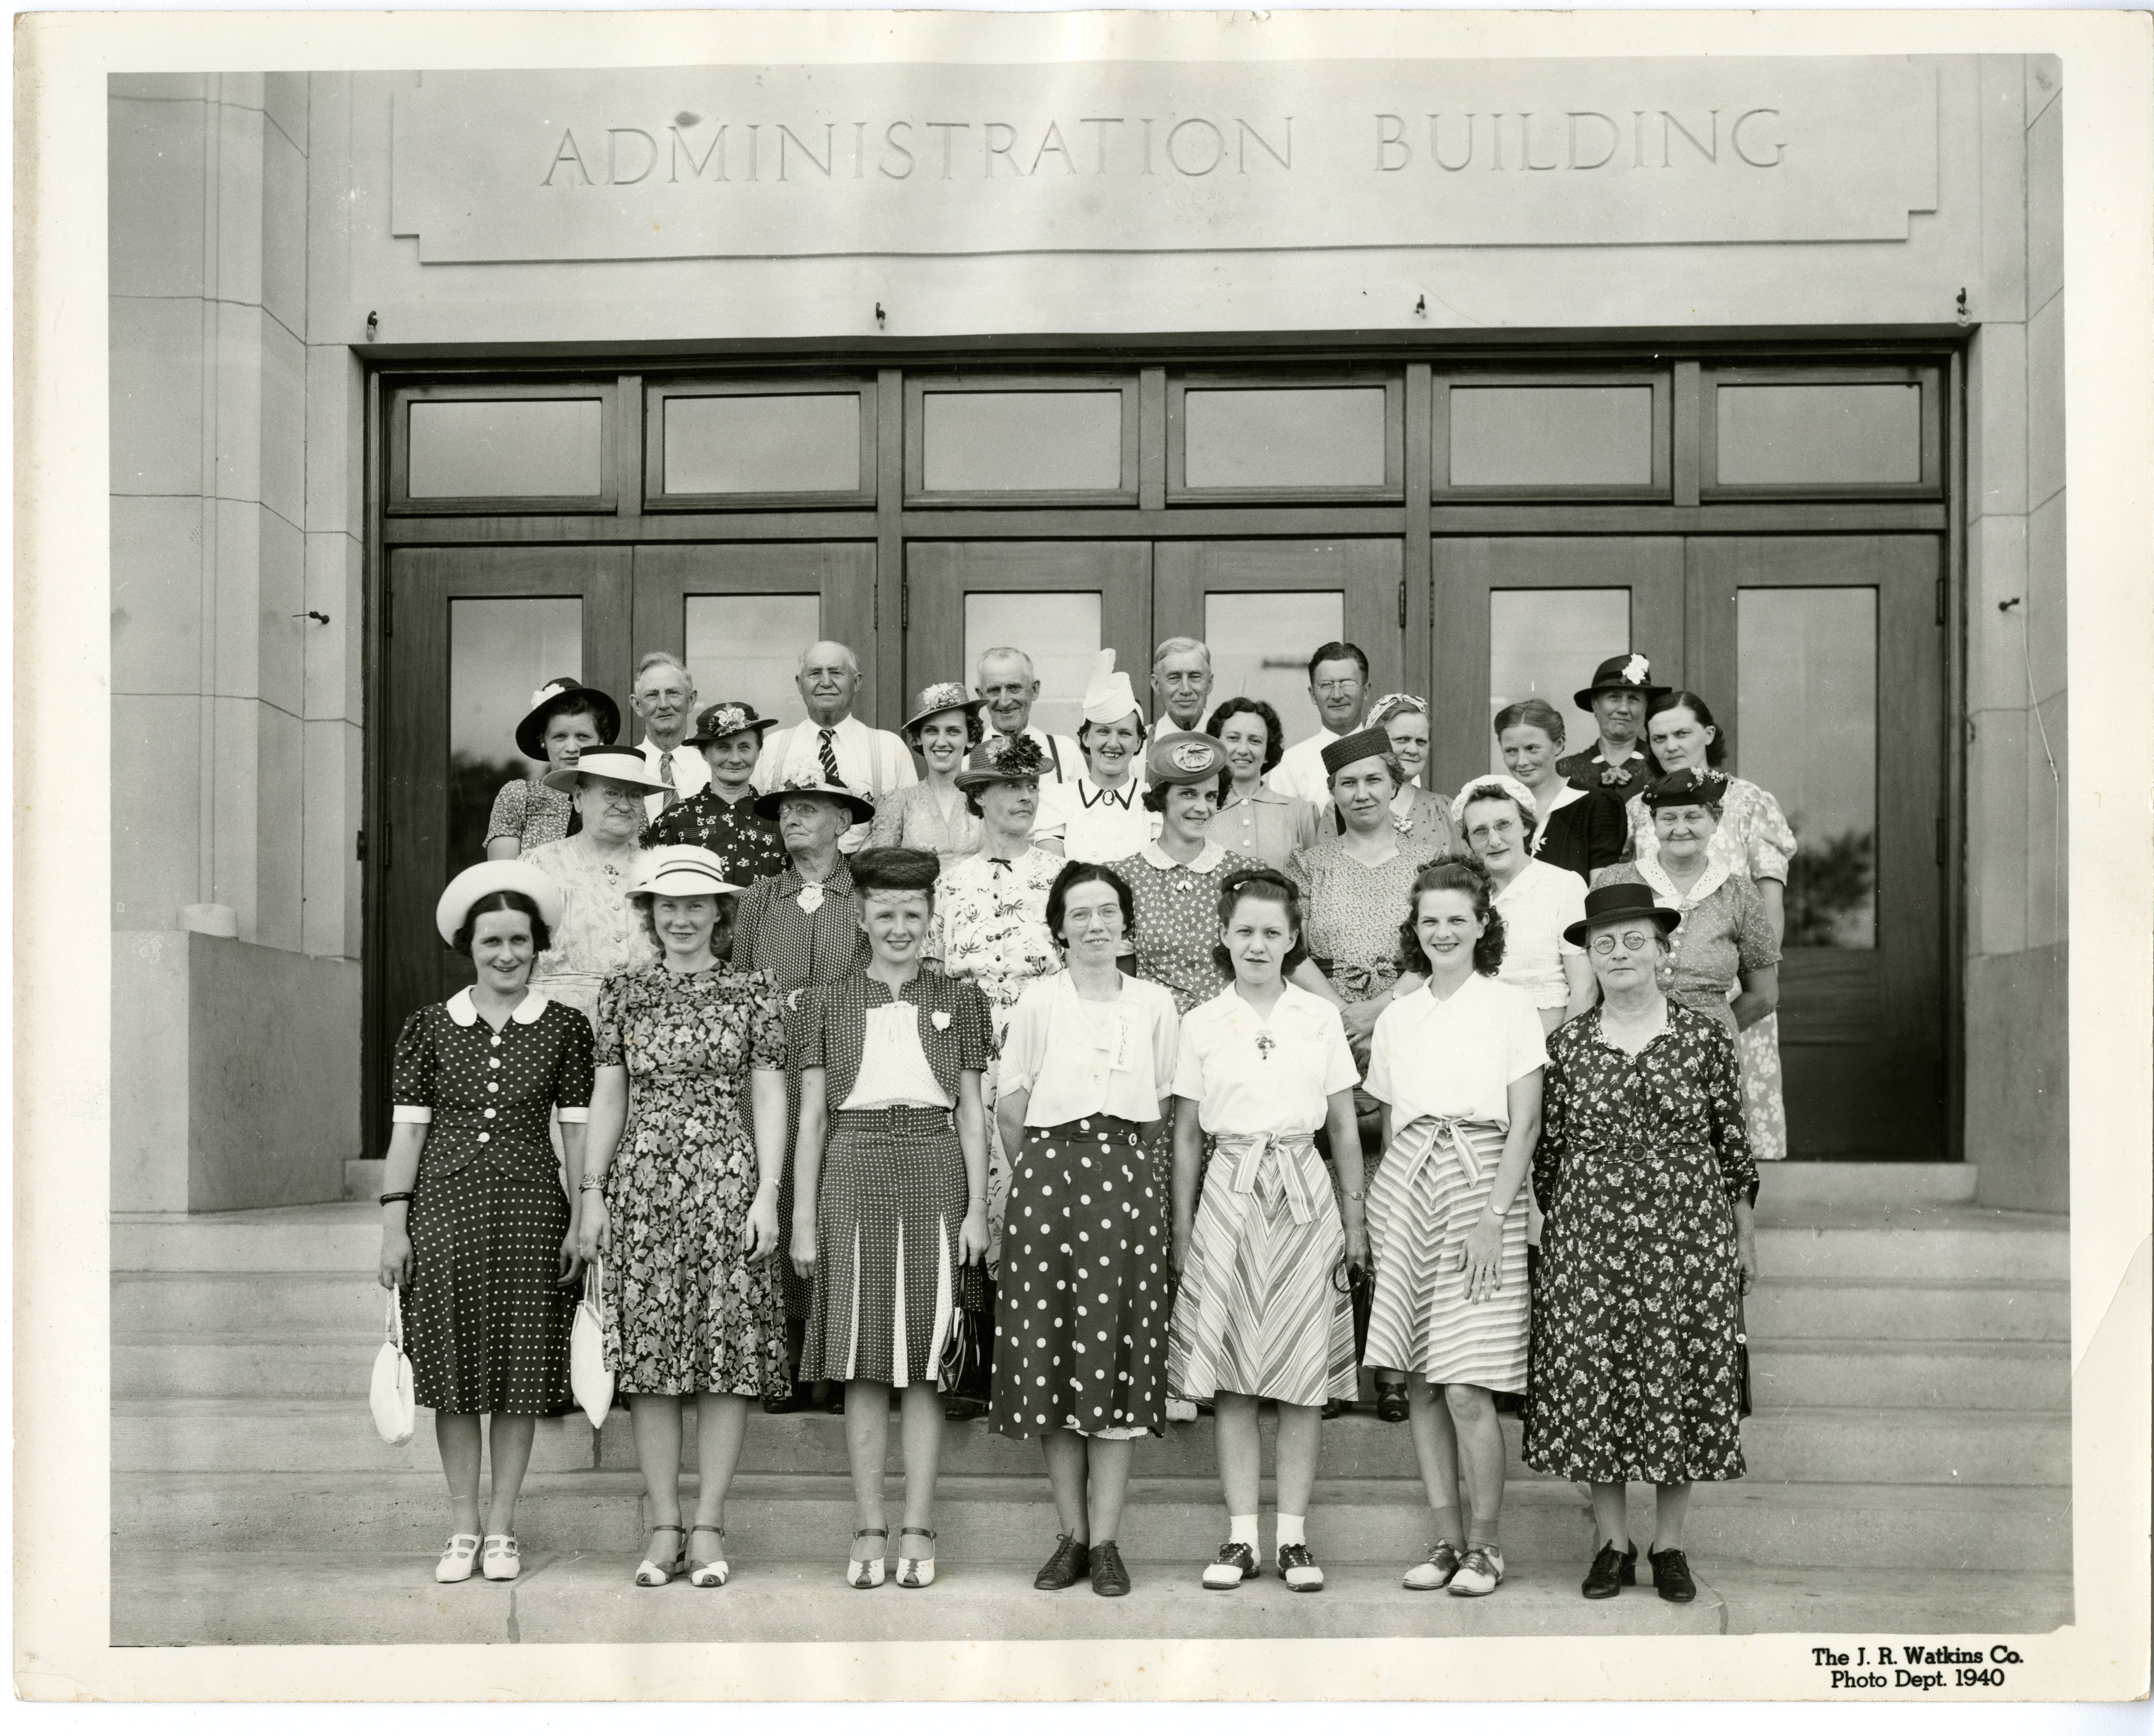 Group of women and five men outside of Administration Building.